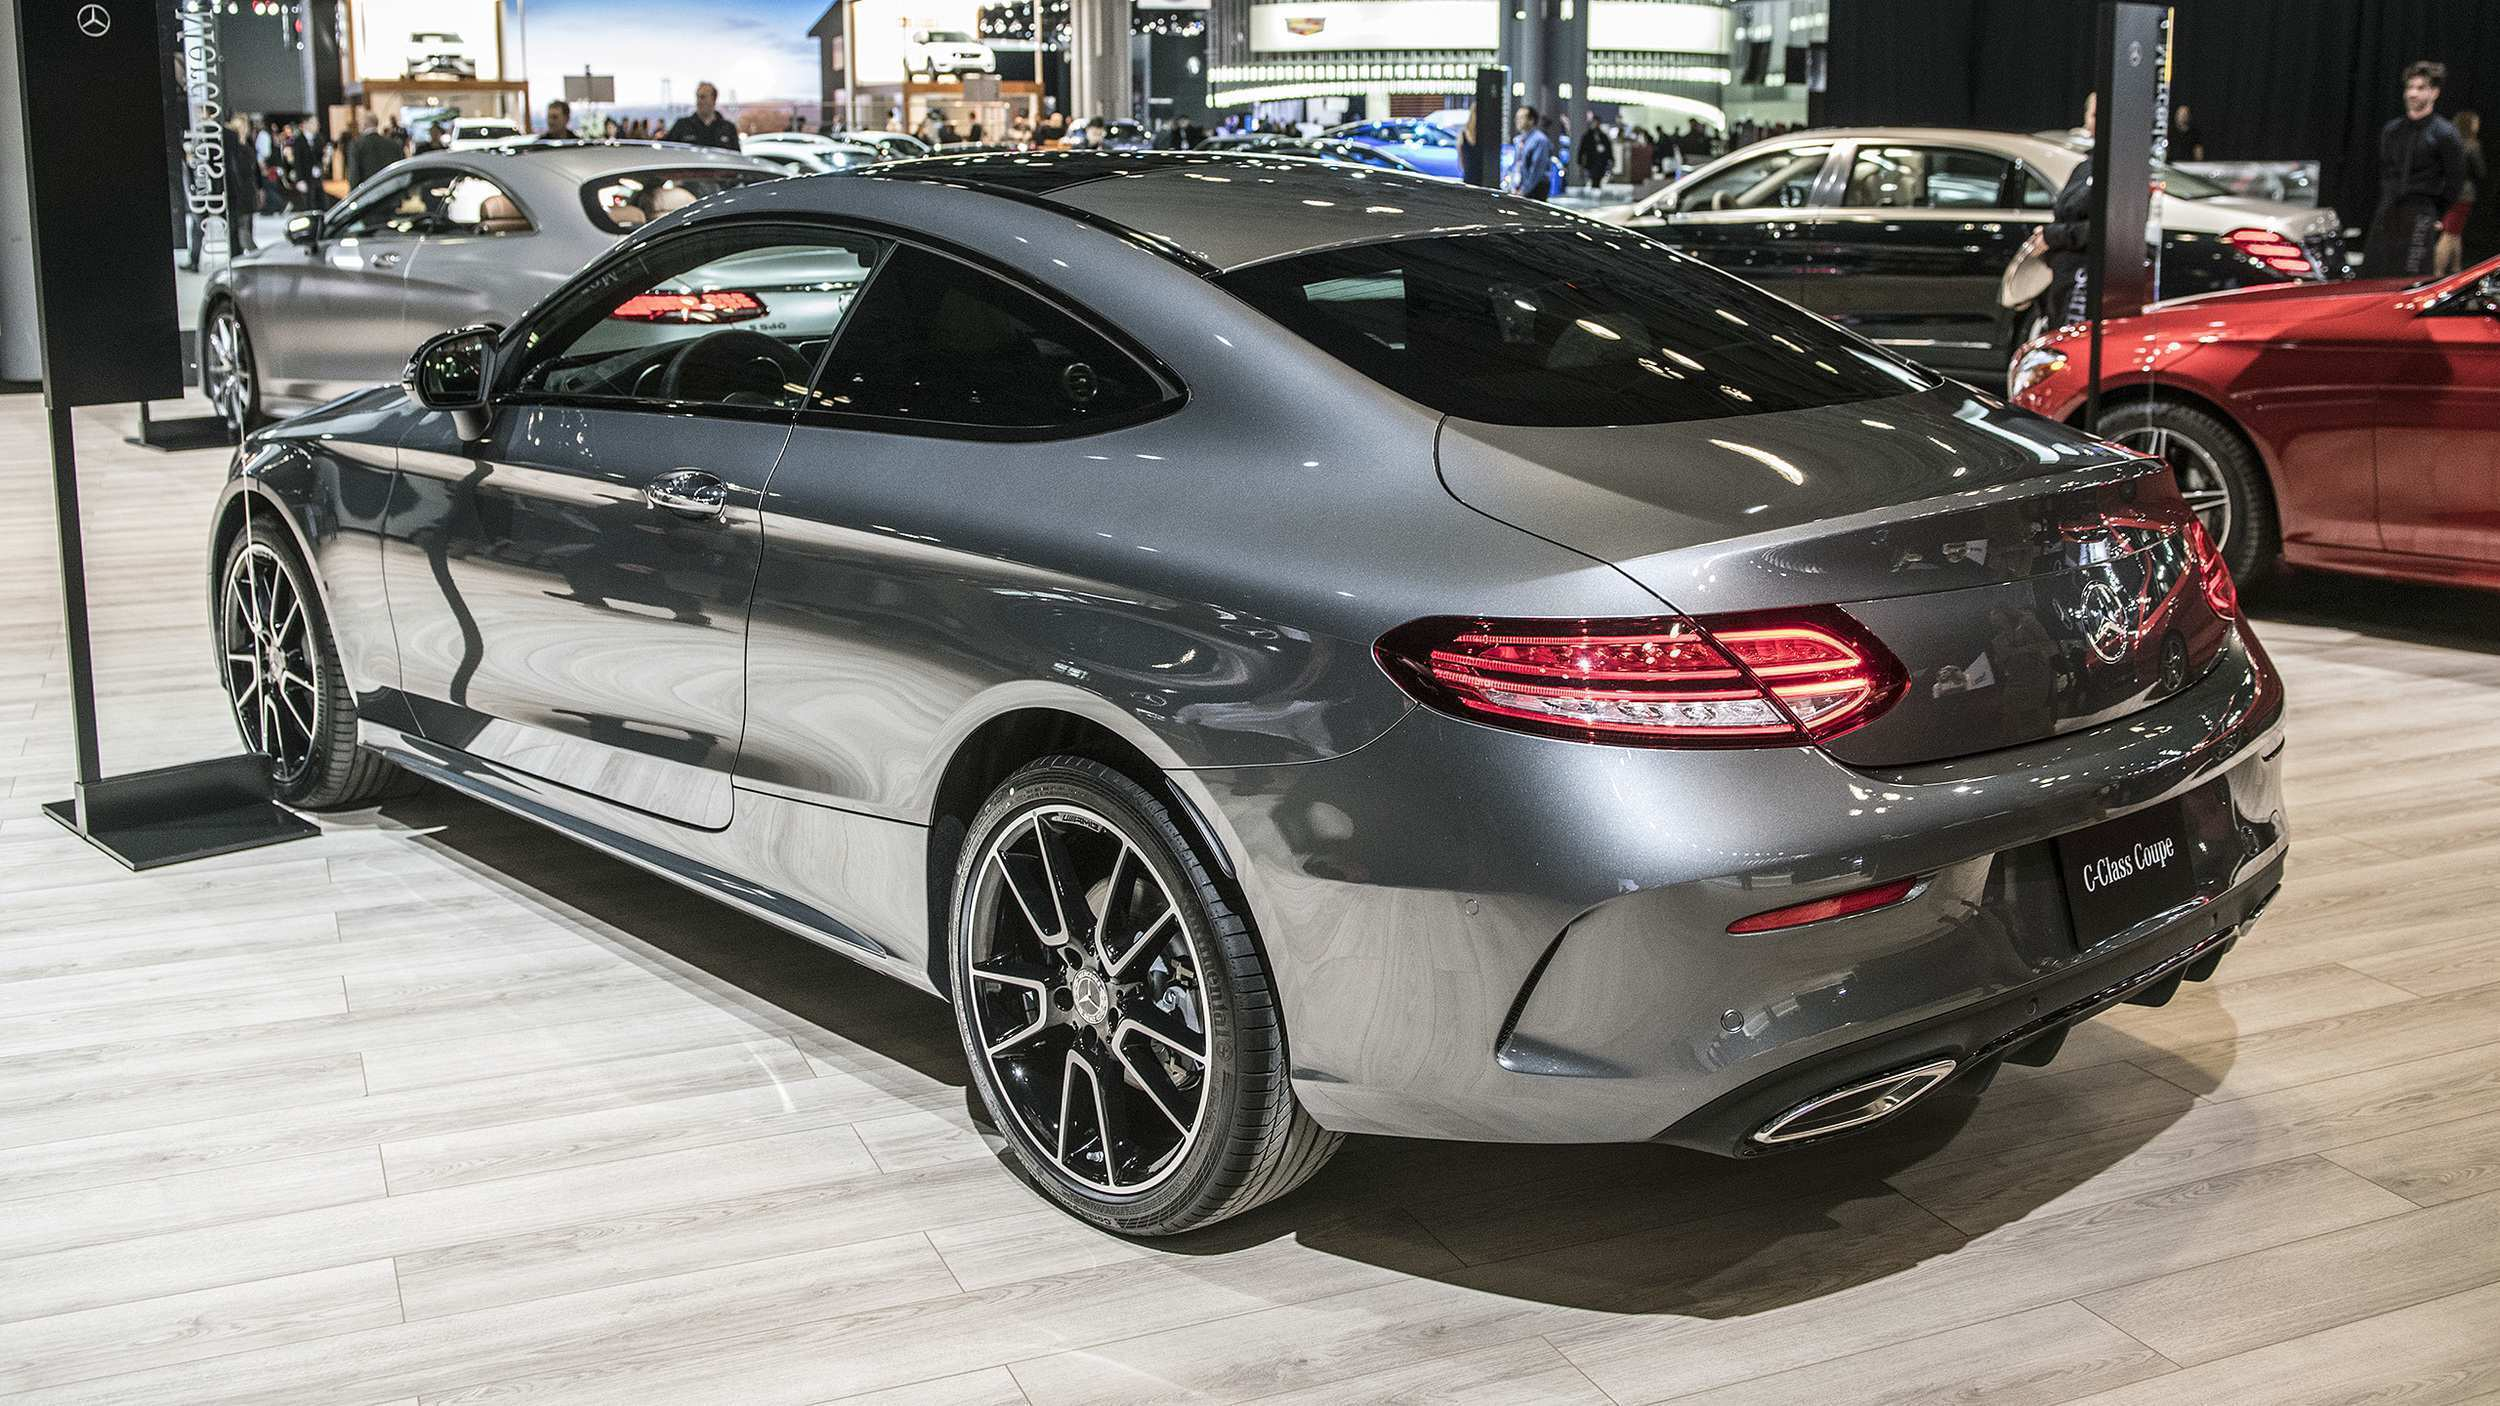 89 The Best Mercedes 2019 Coupe History